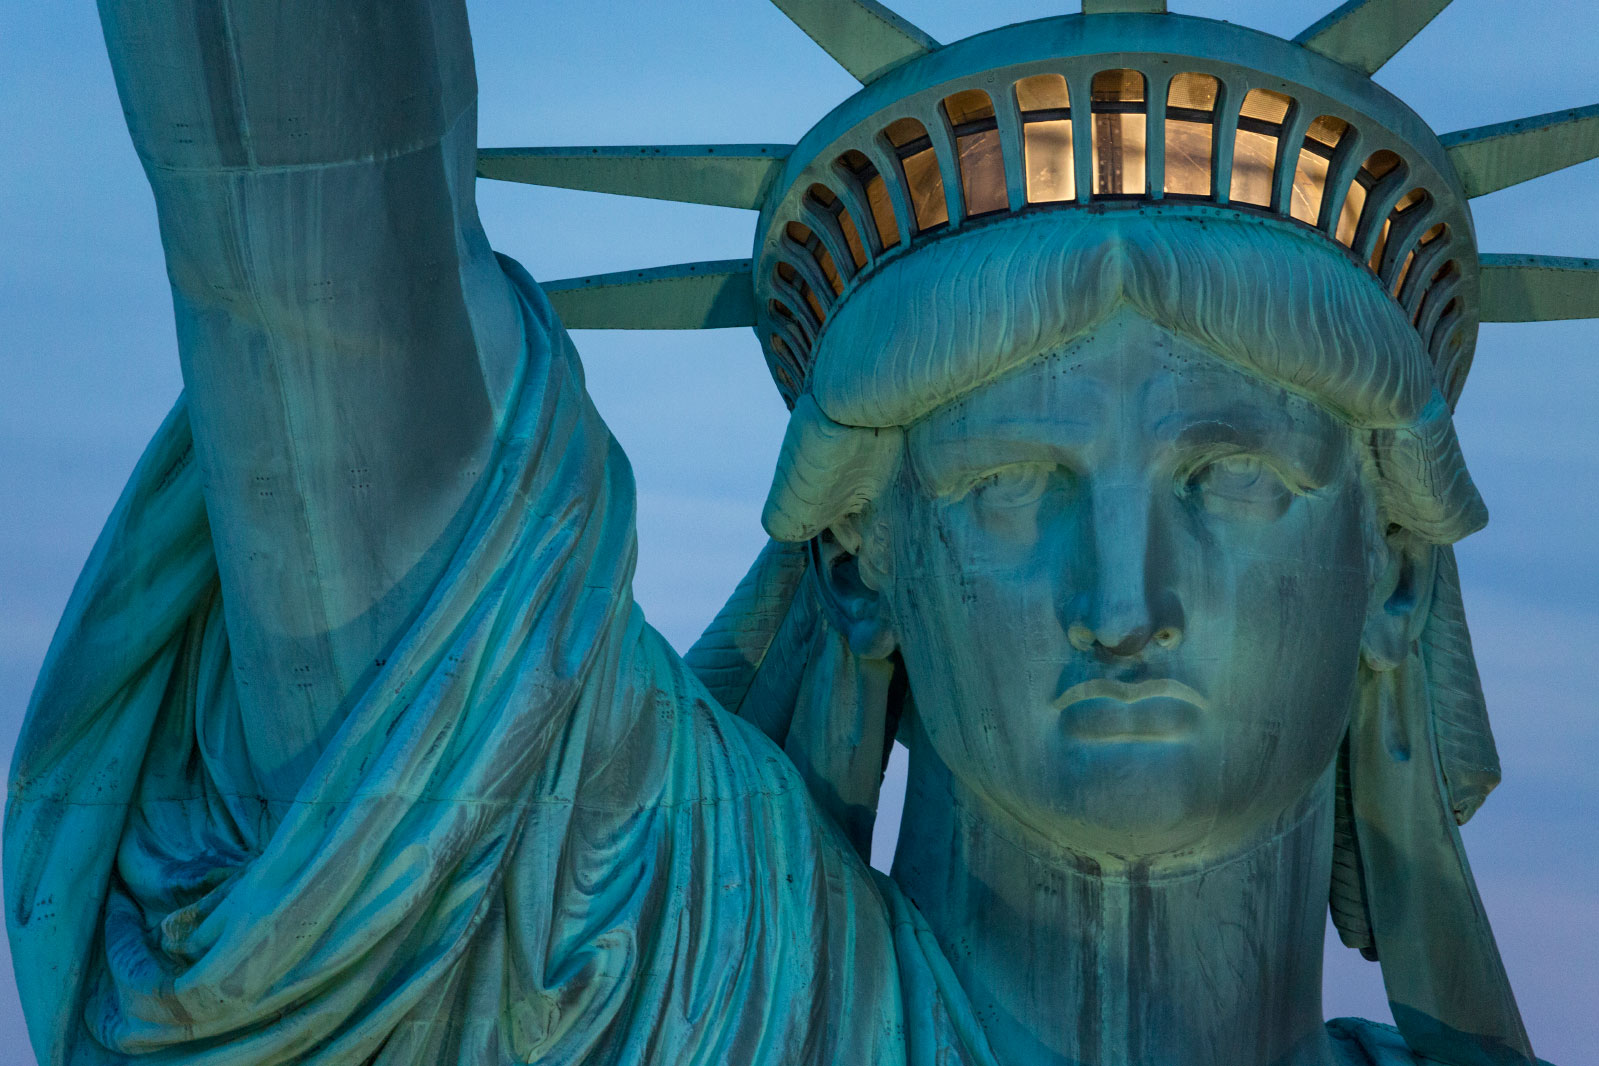 The Statue of Liberty in New York city on an early summer morning.